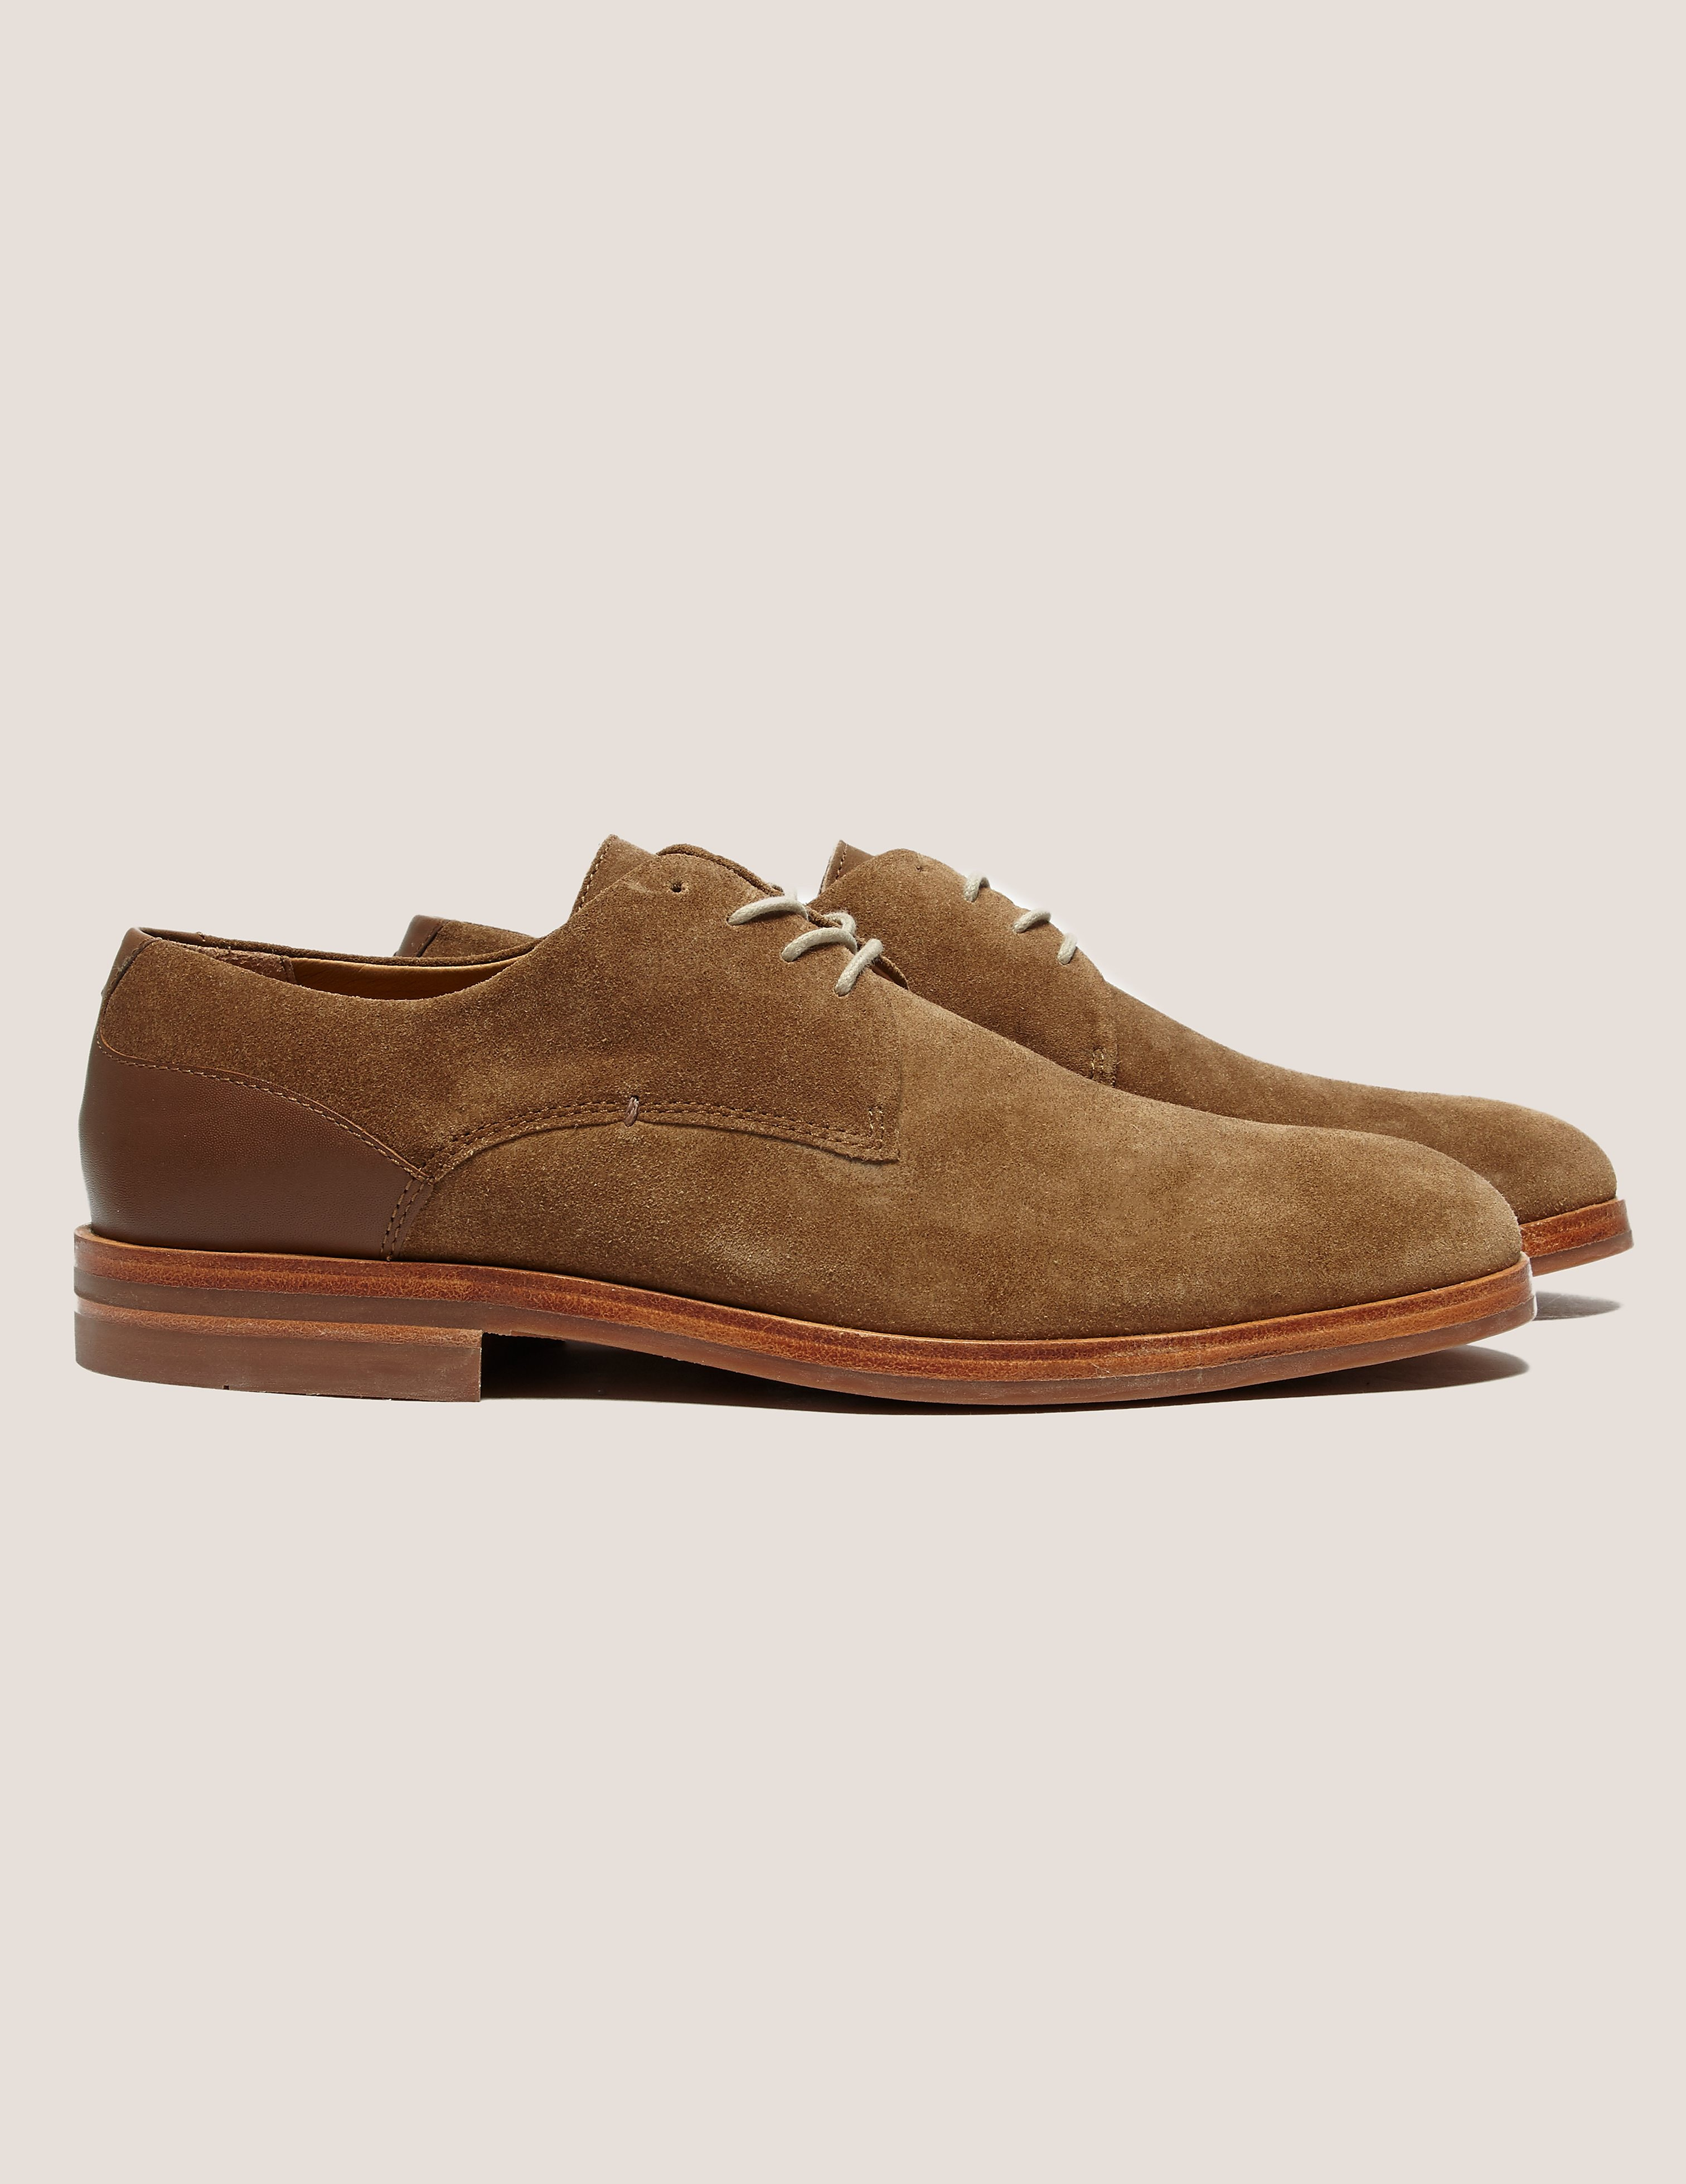 H by Hudson Enrico Derby Shoes